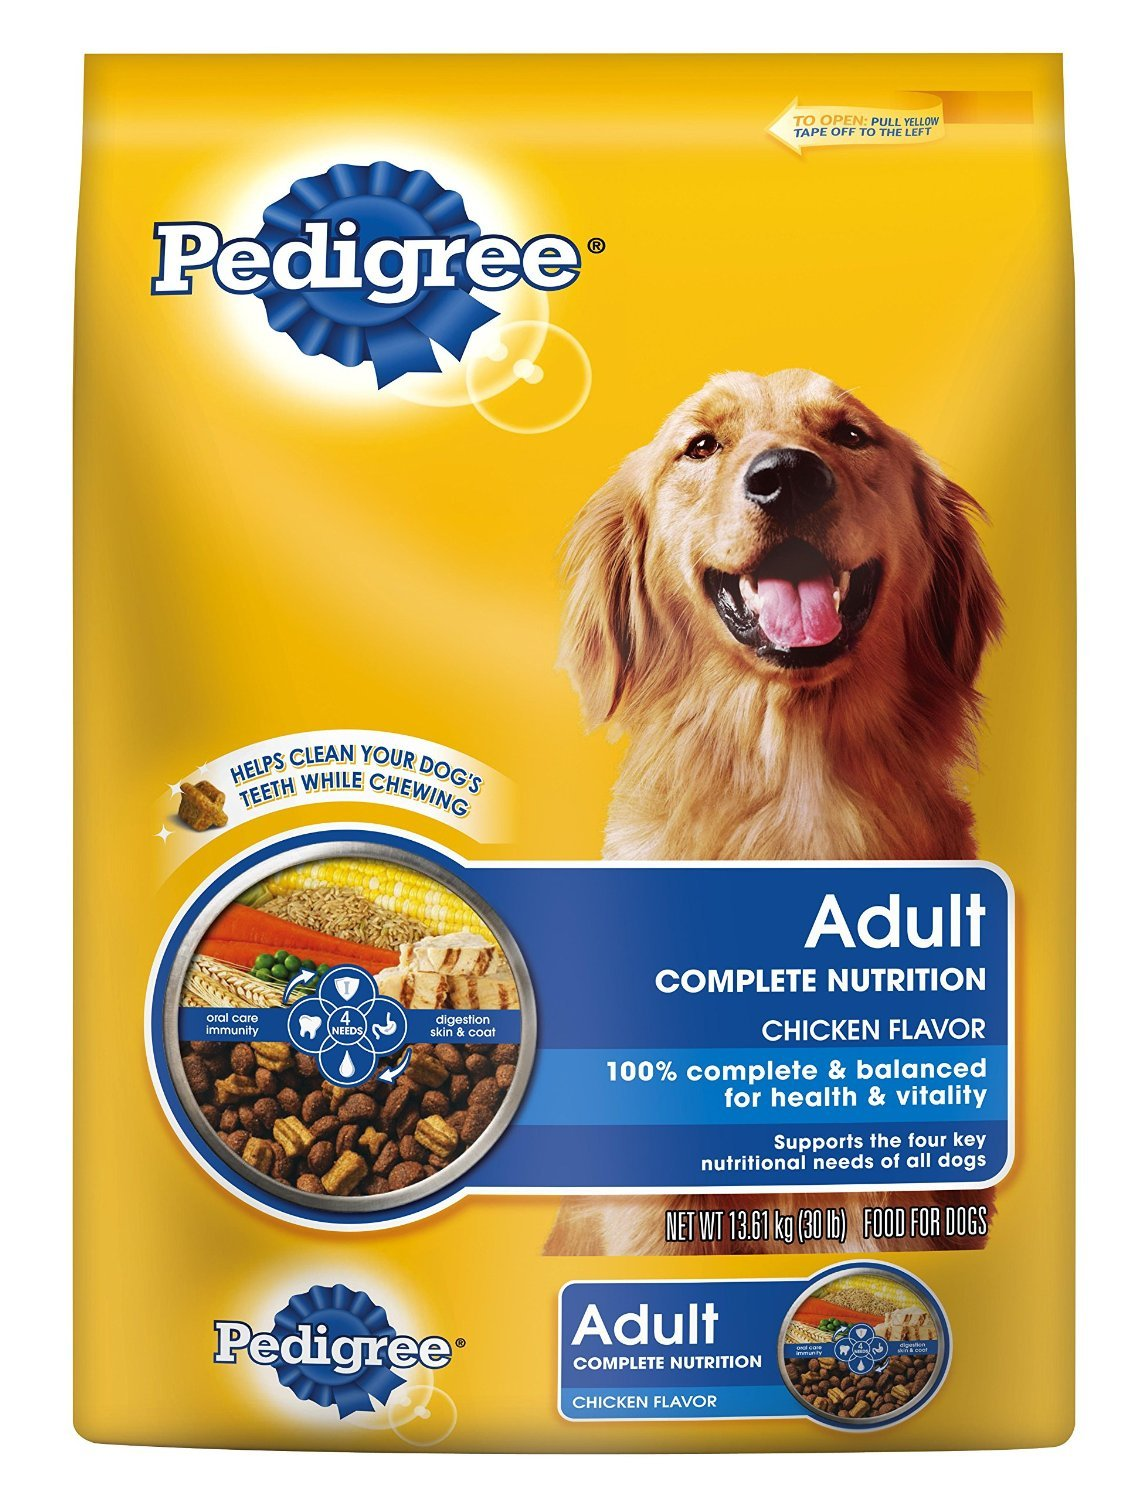 Low Quality Dog Food Brands